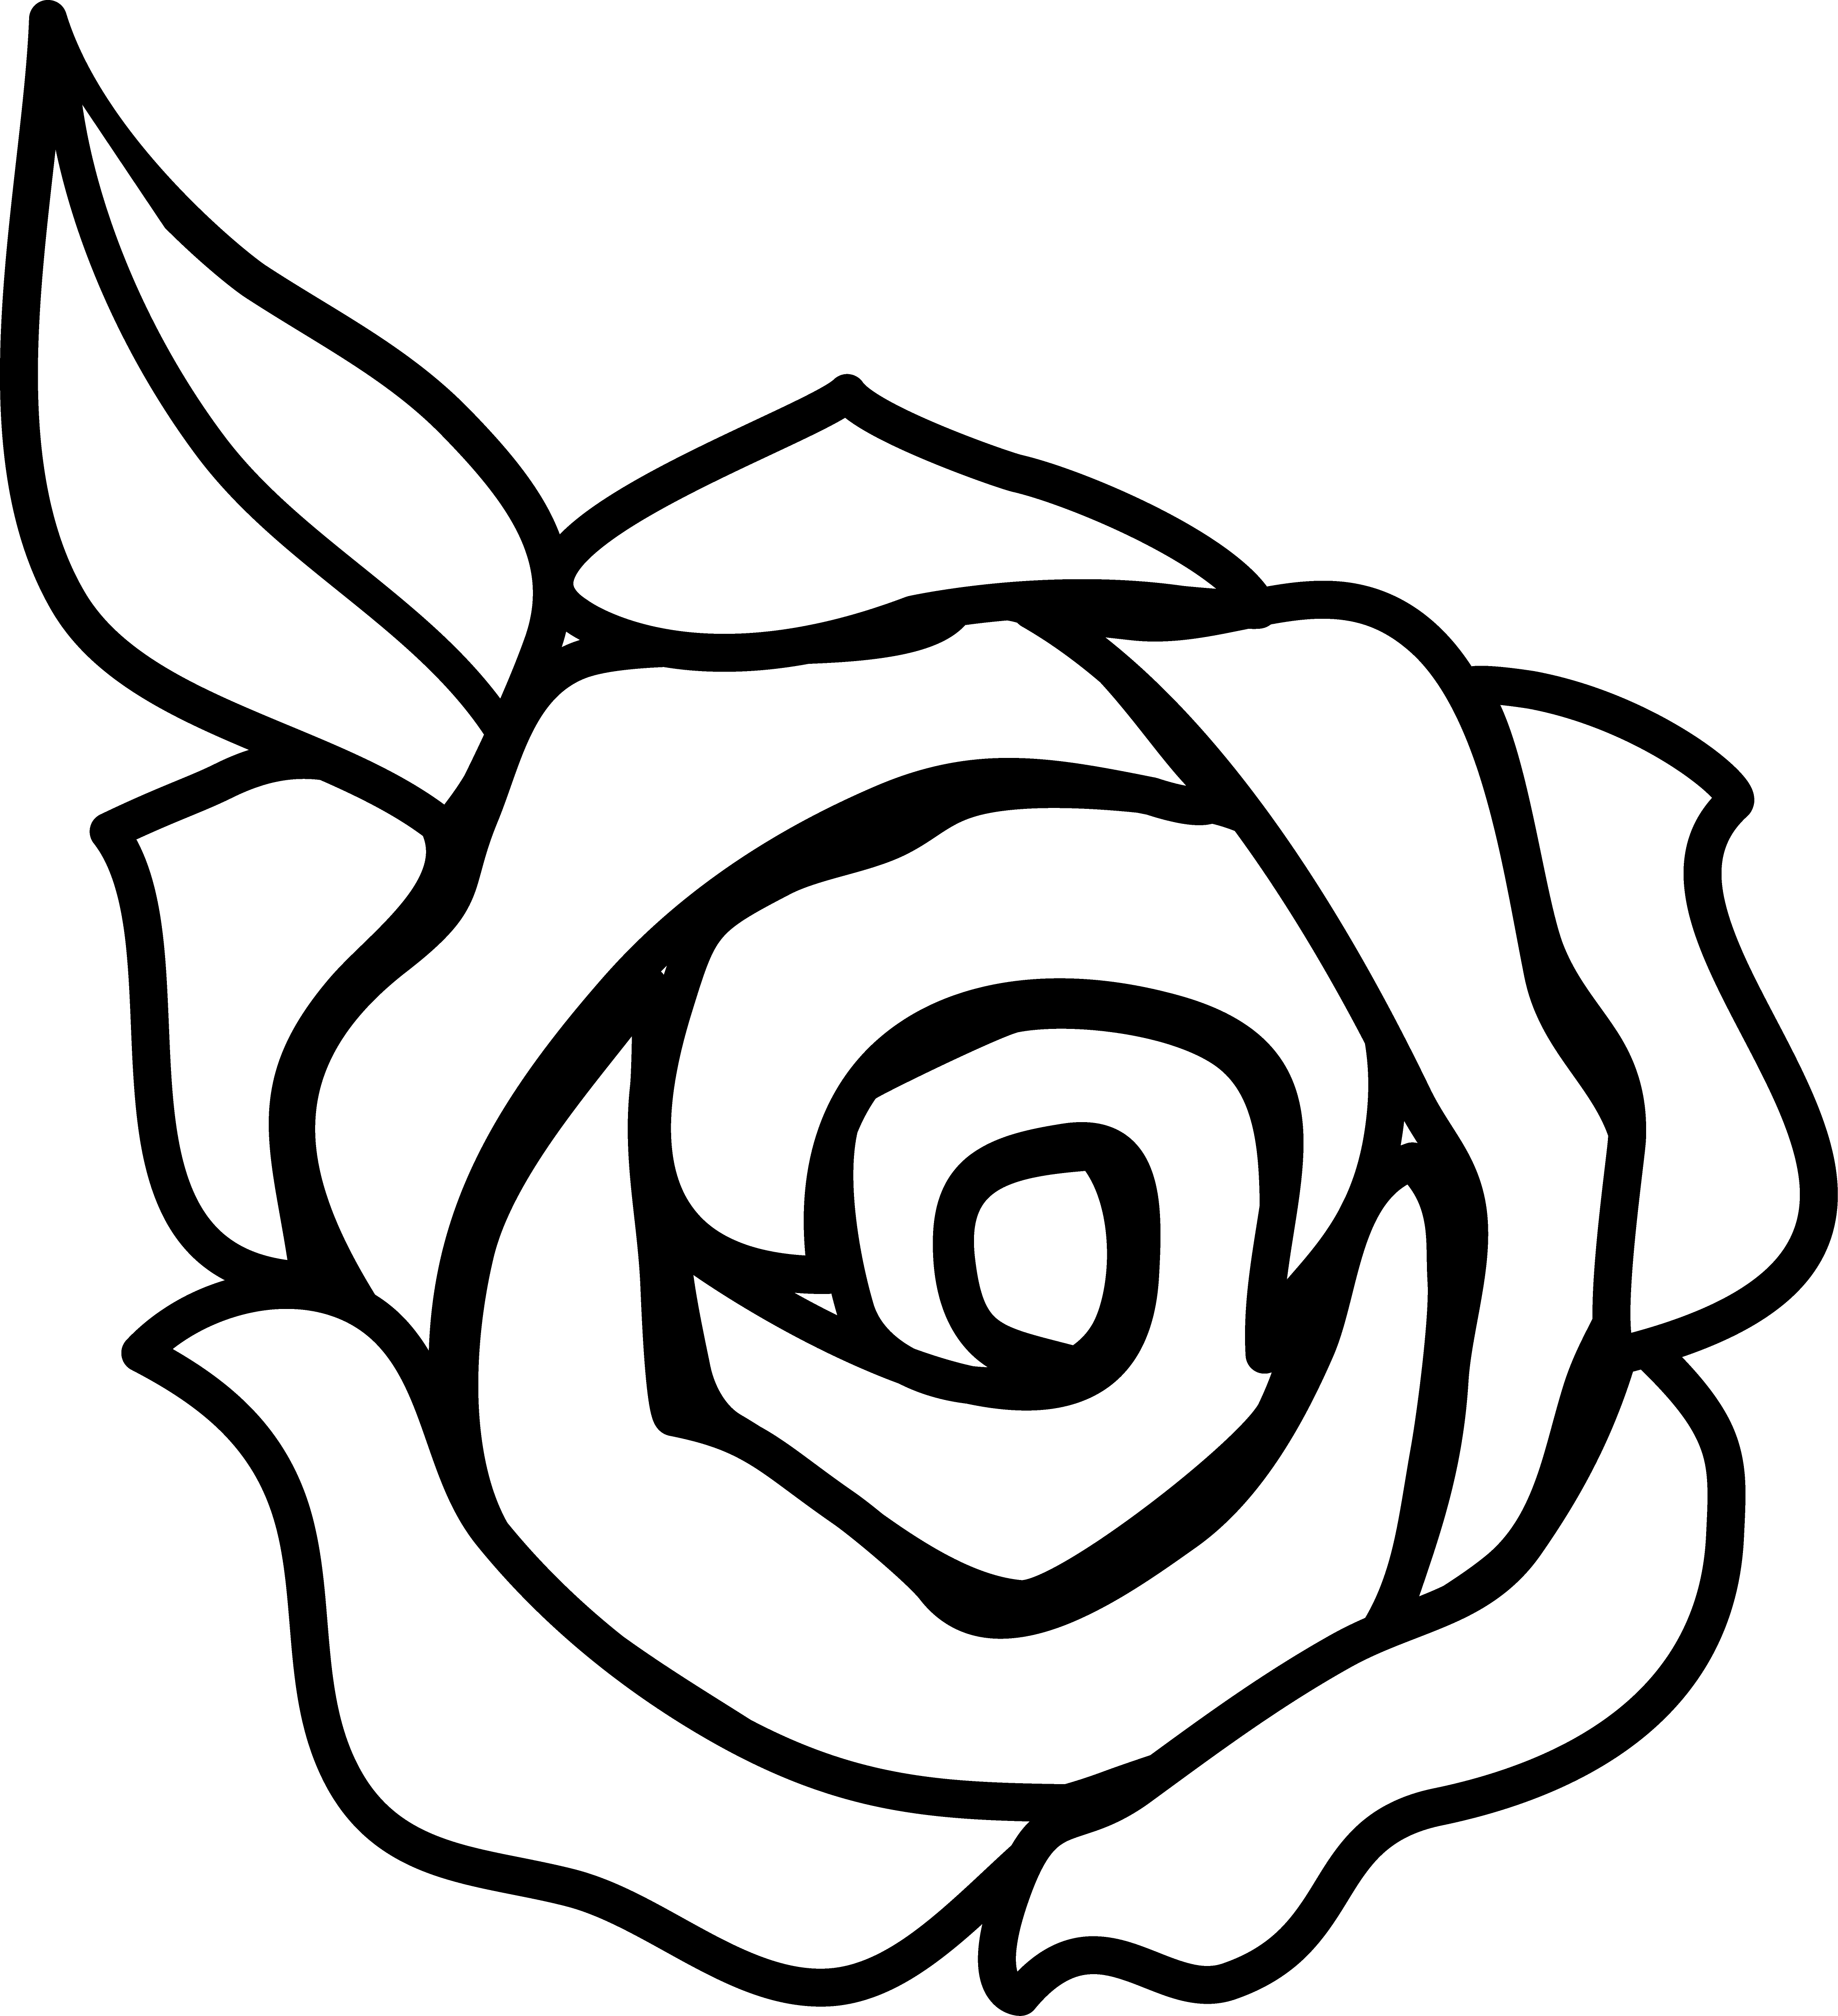 Free Clip Art Black and White Rose